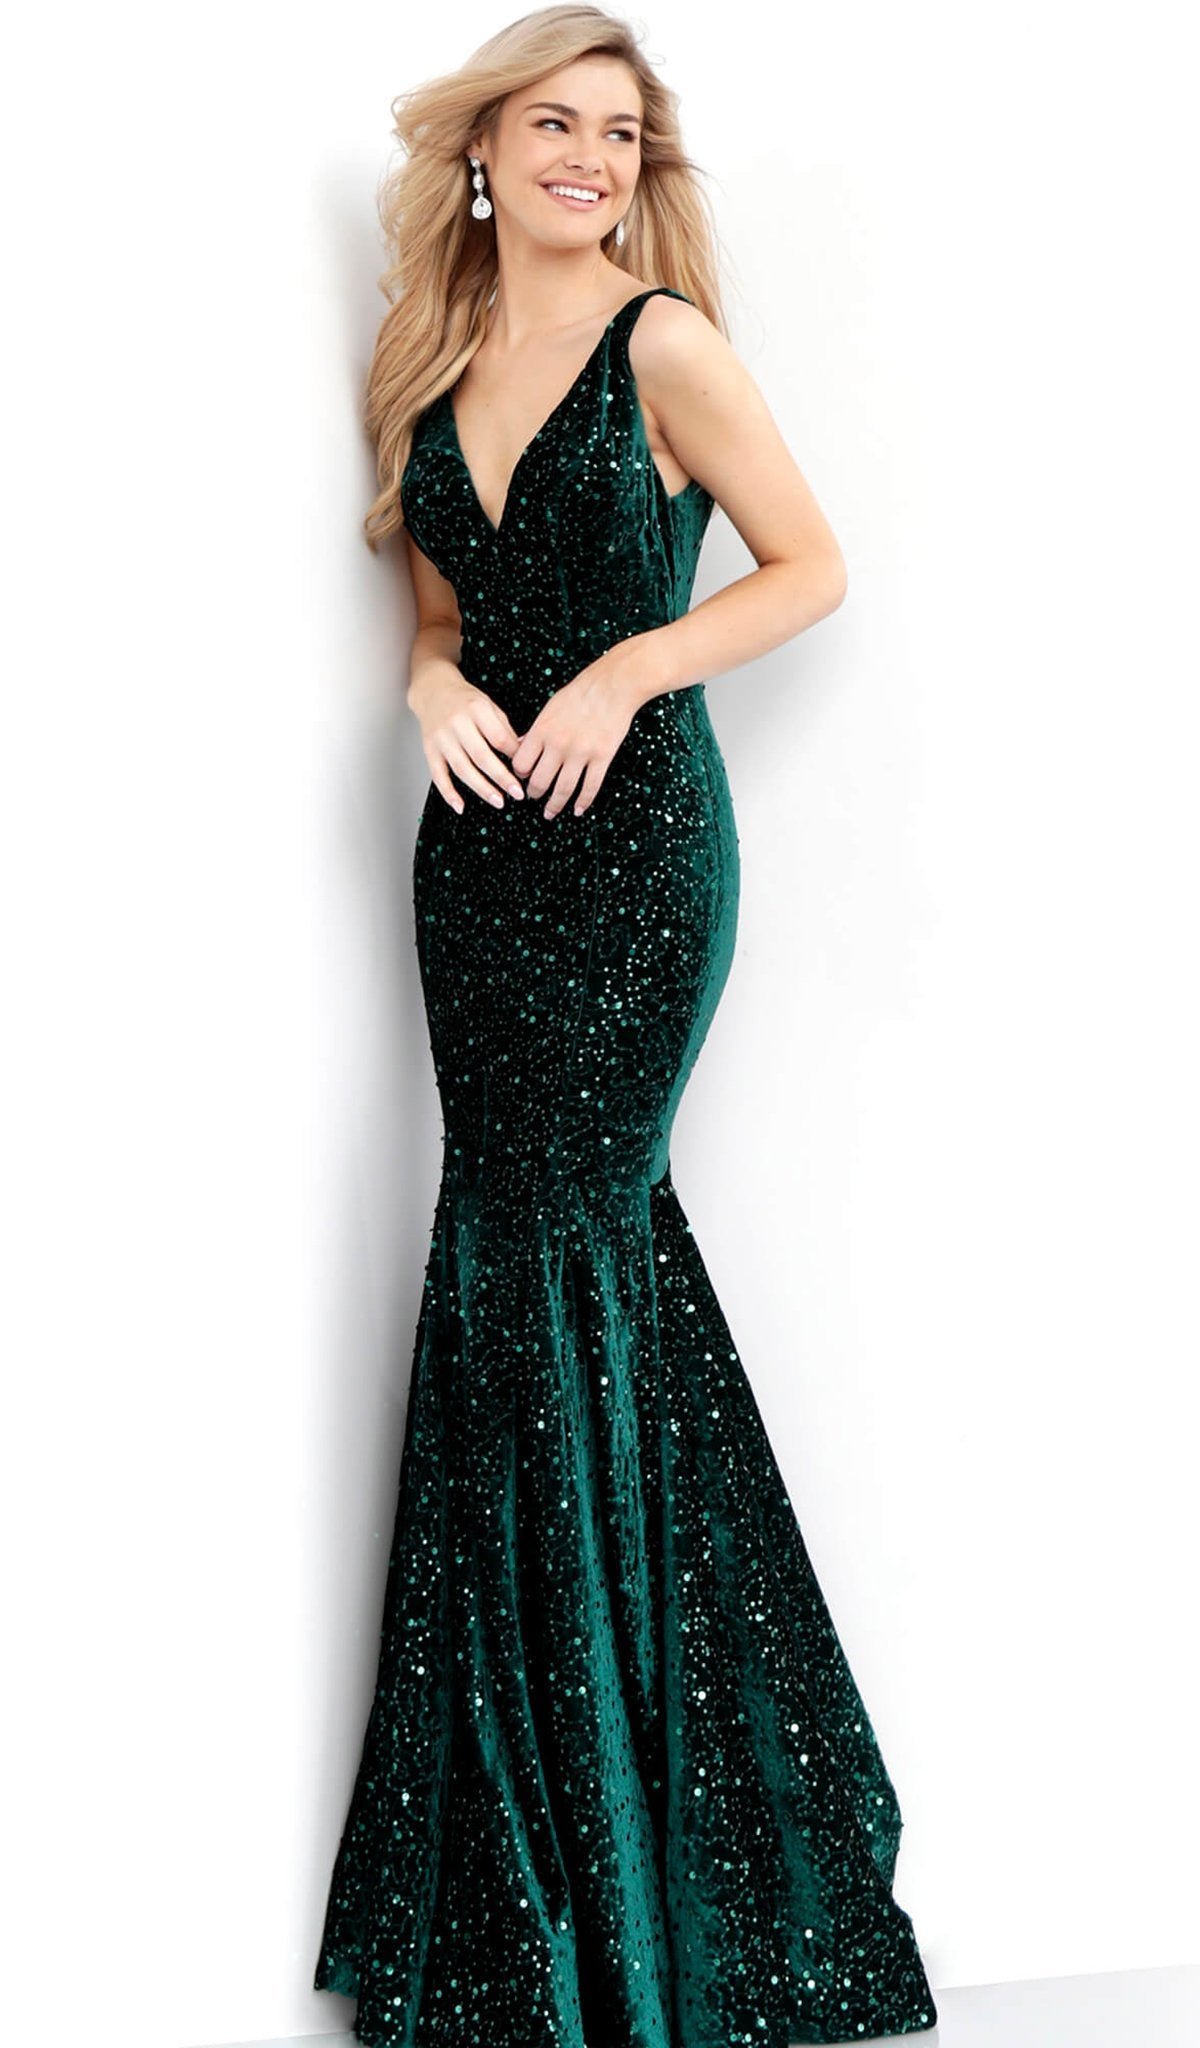 Jovani - 63917 Sequined Plunging V-neck Velvet Mermaid Dress in Green